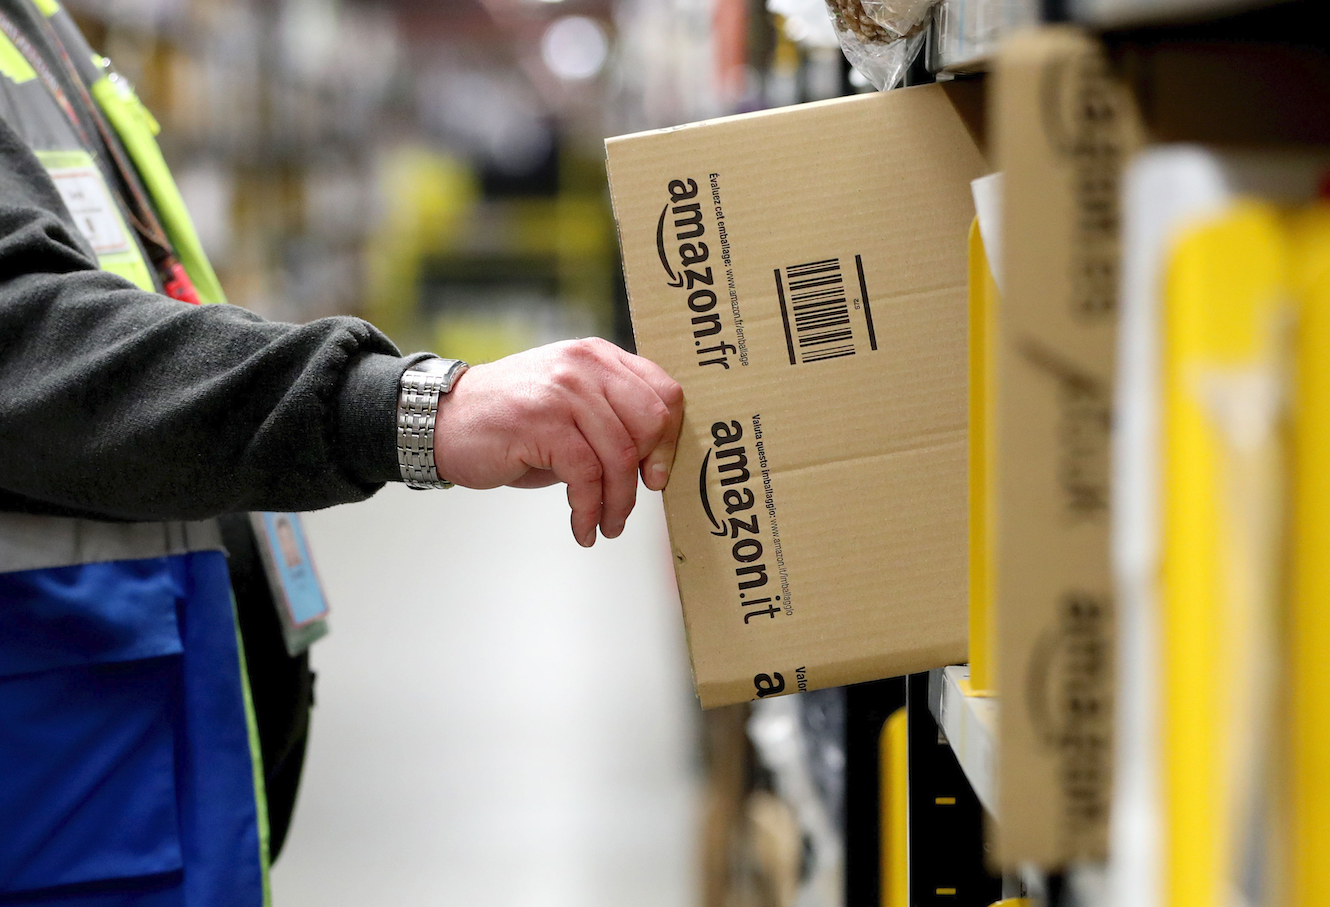 Amazon may bring its Prime Day sales event back from October to July, and a Canada warehouse is under investigation for labor violations.